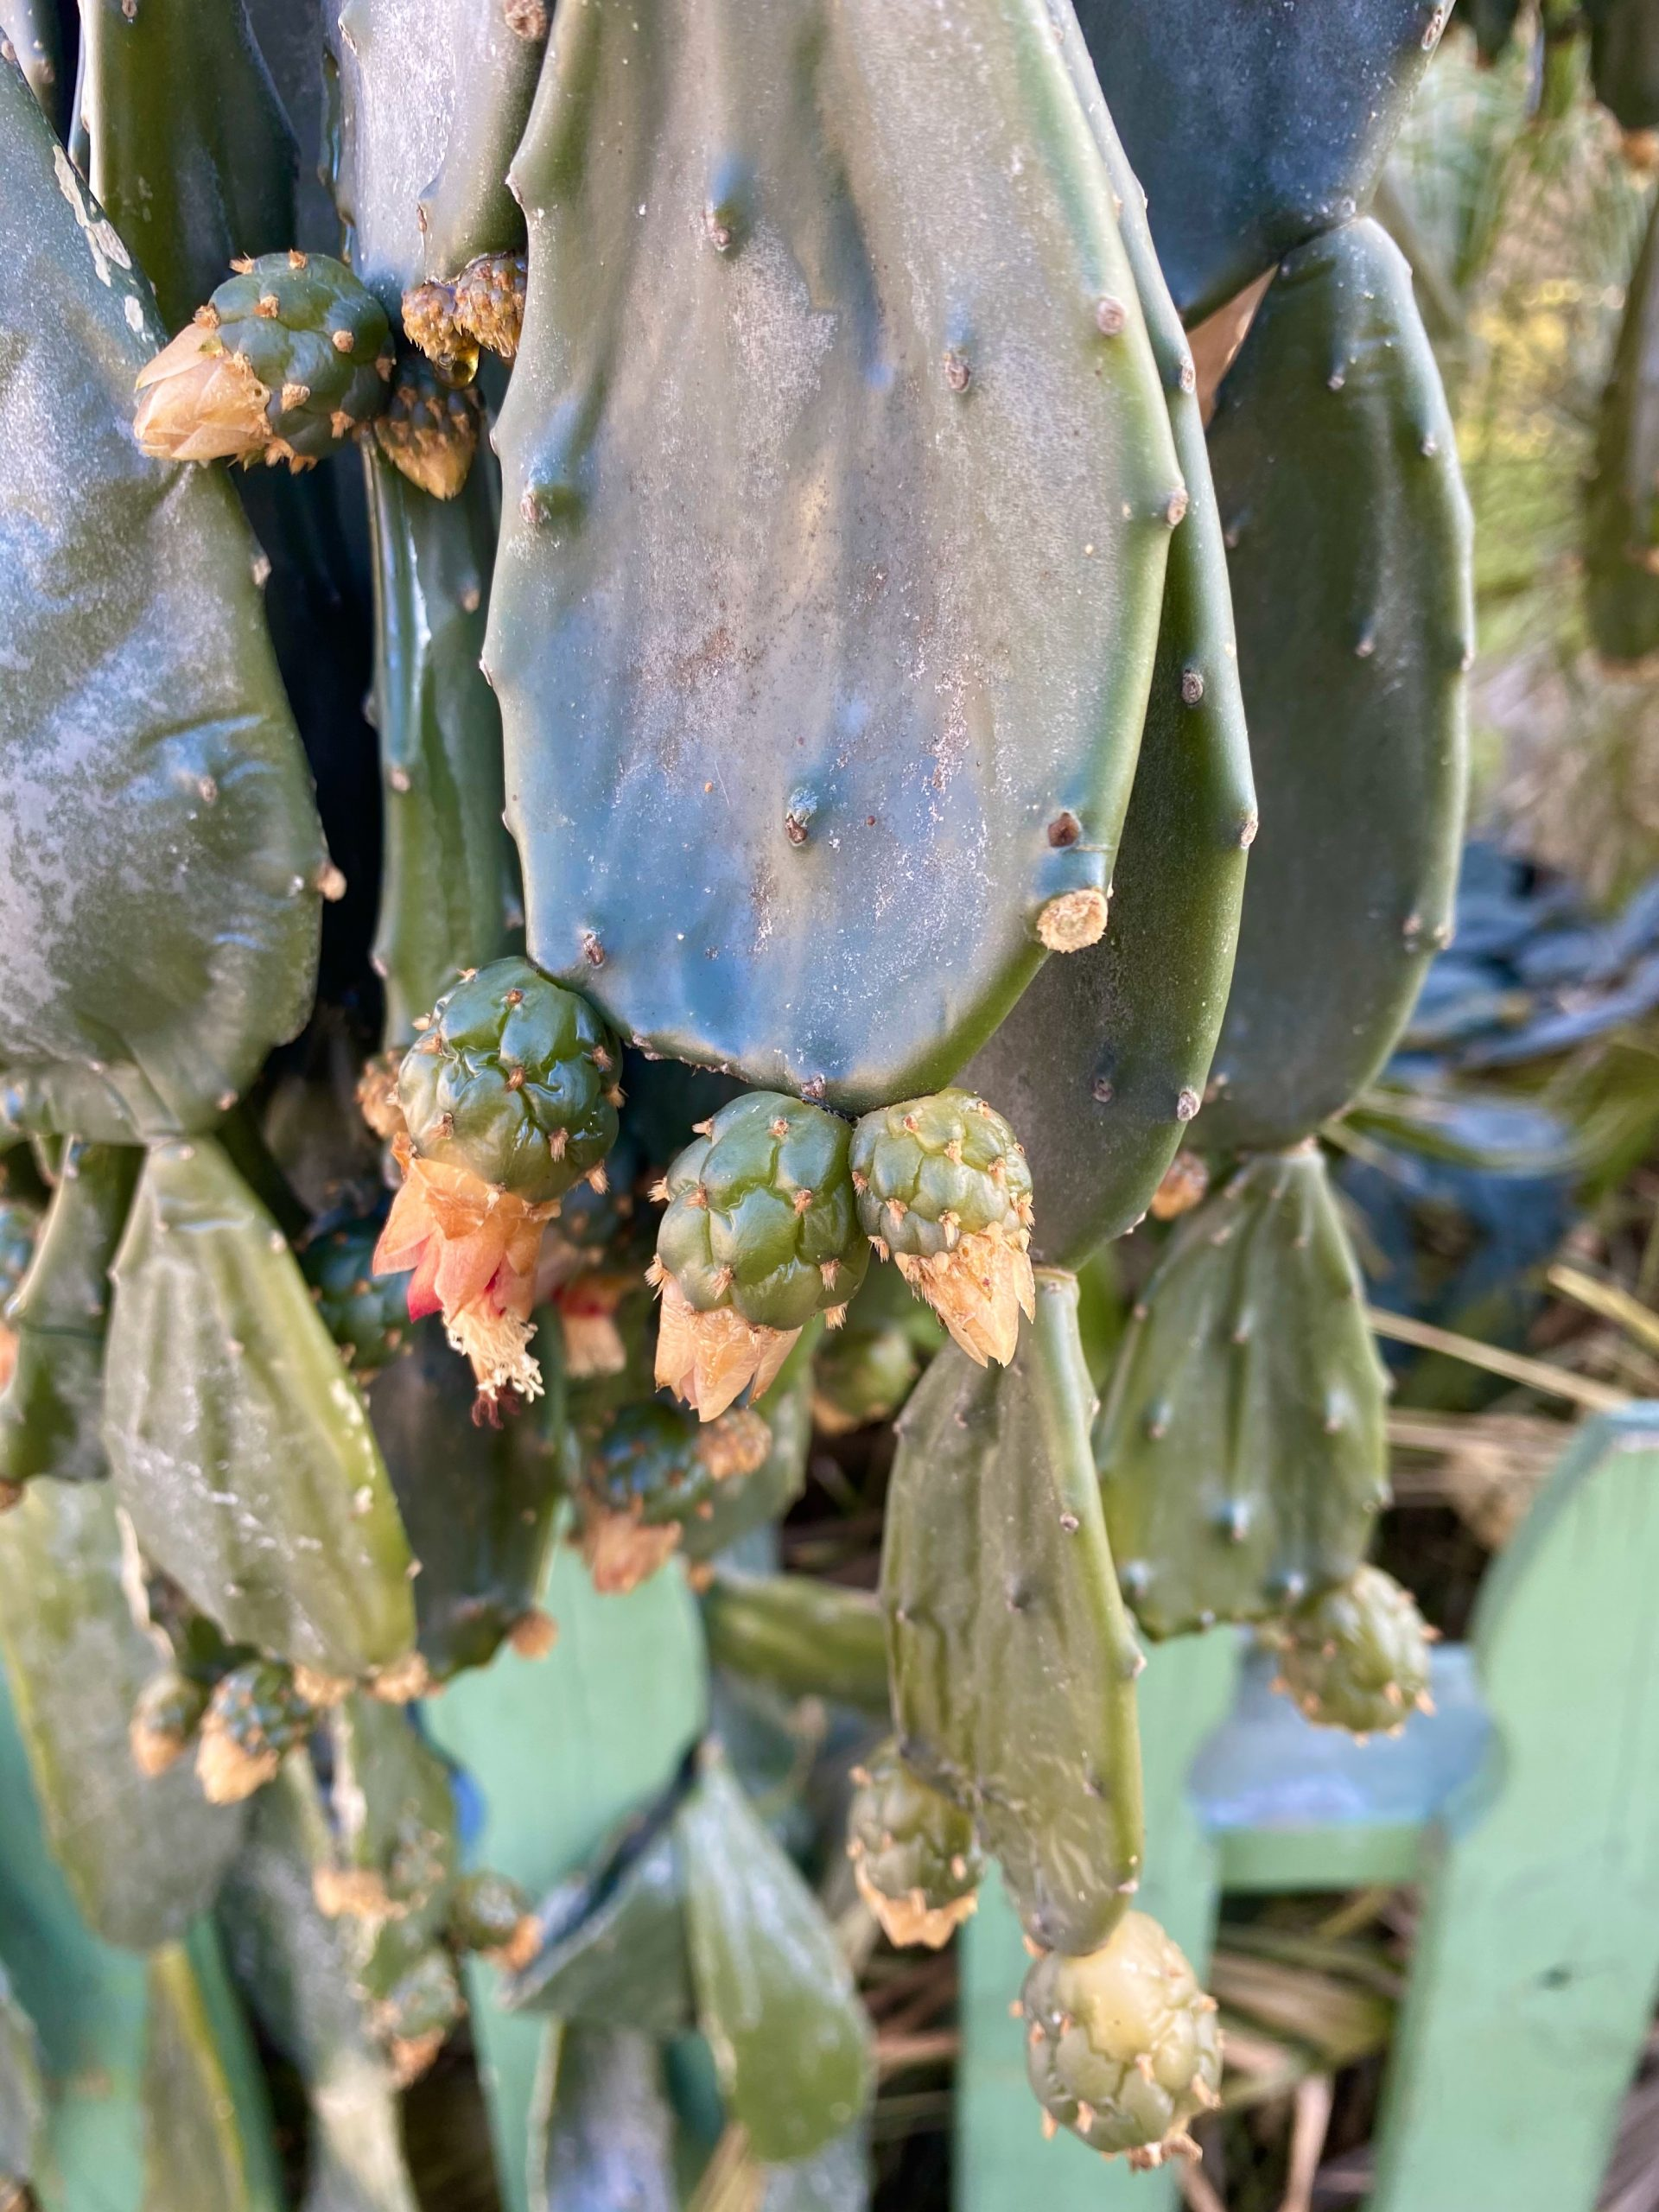 Frozen prickly pear